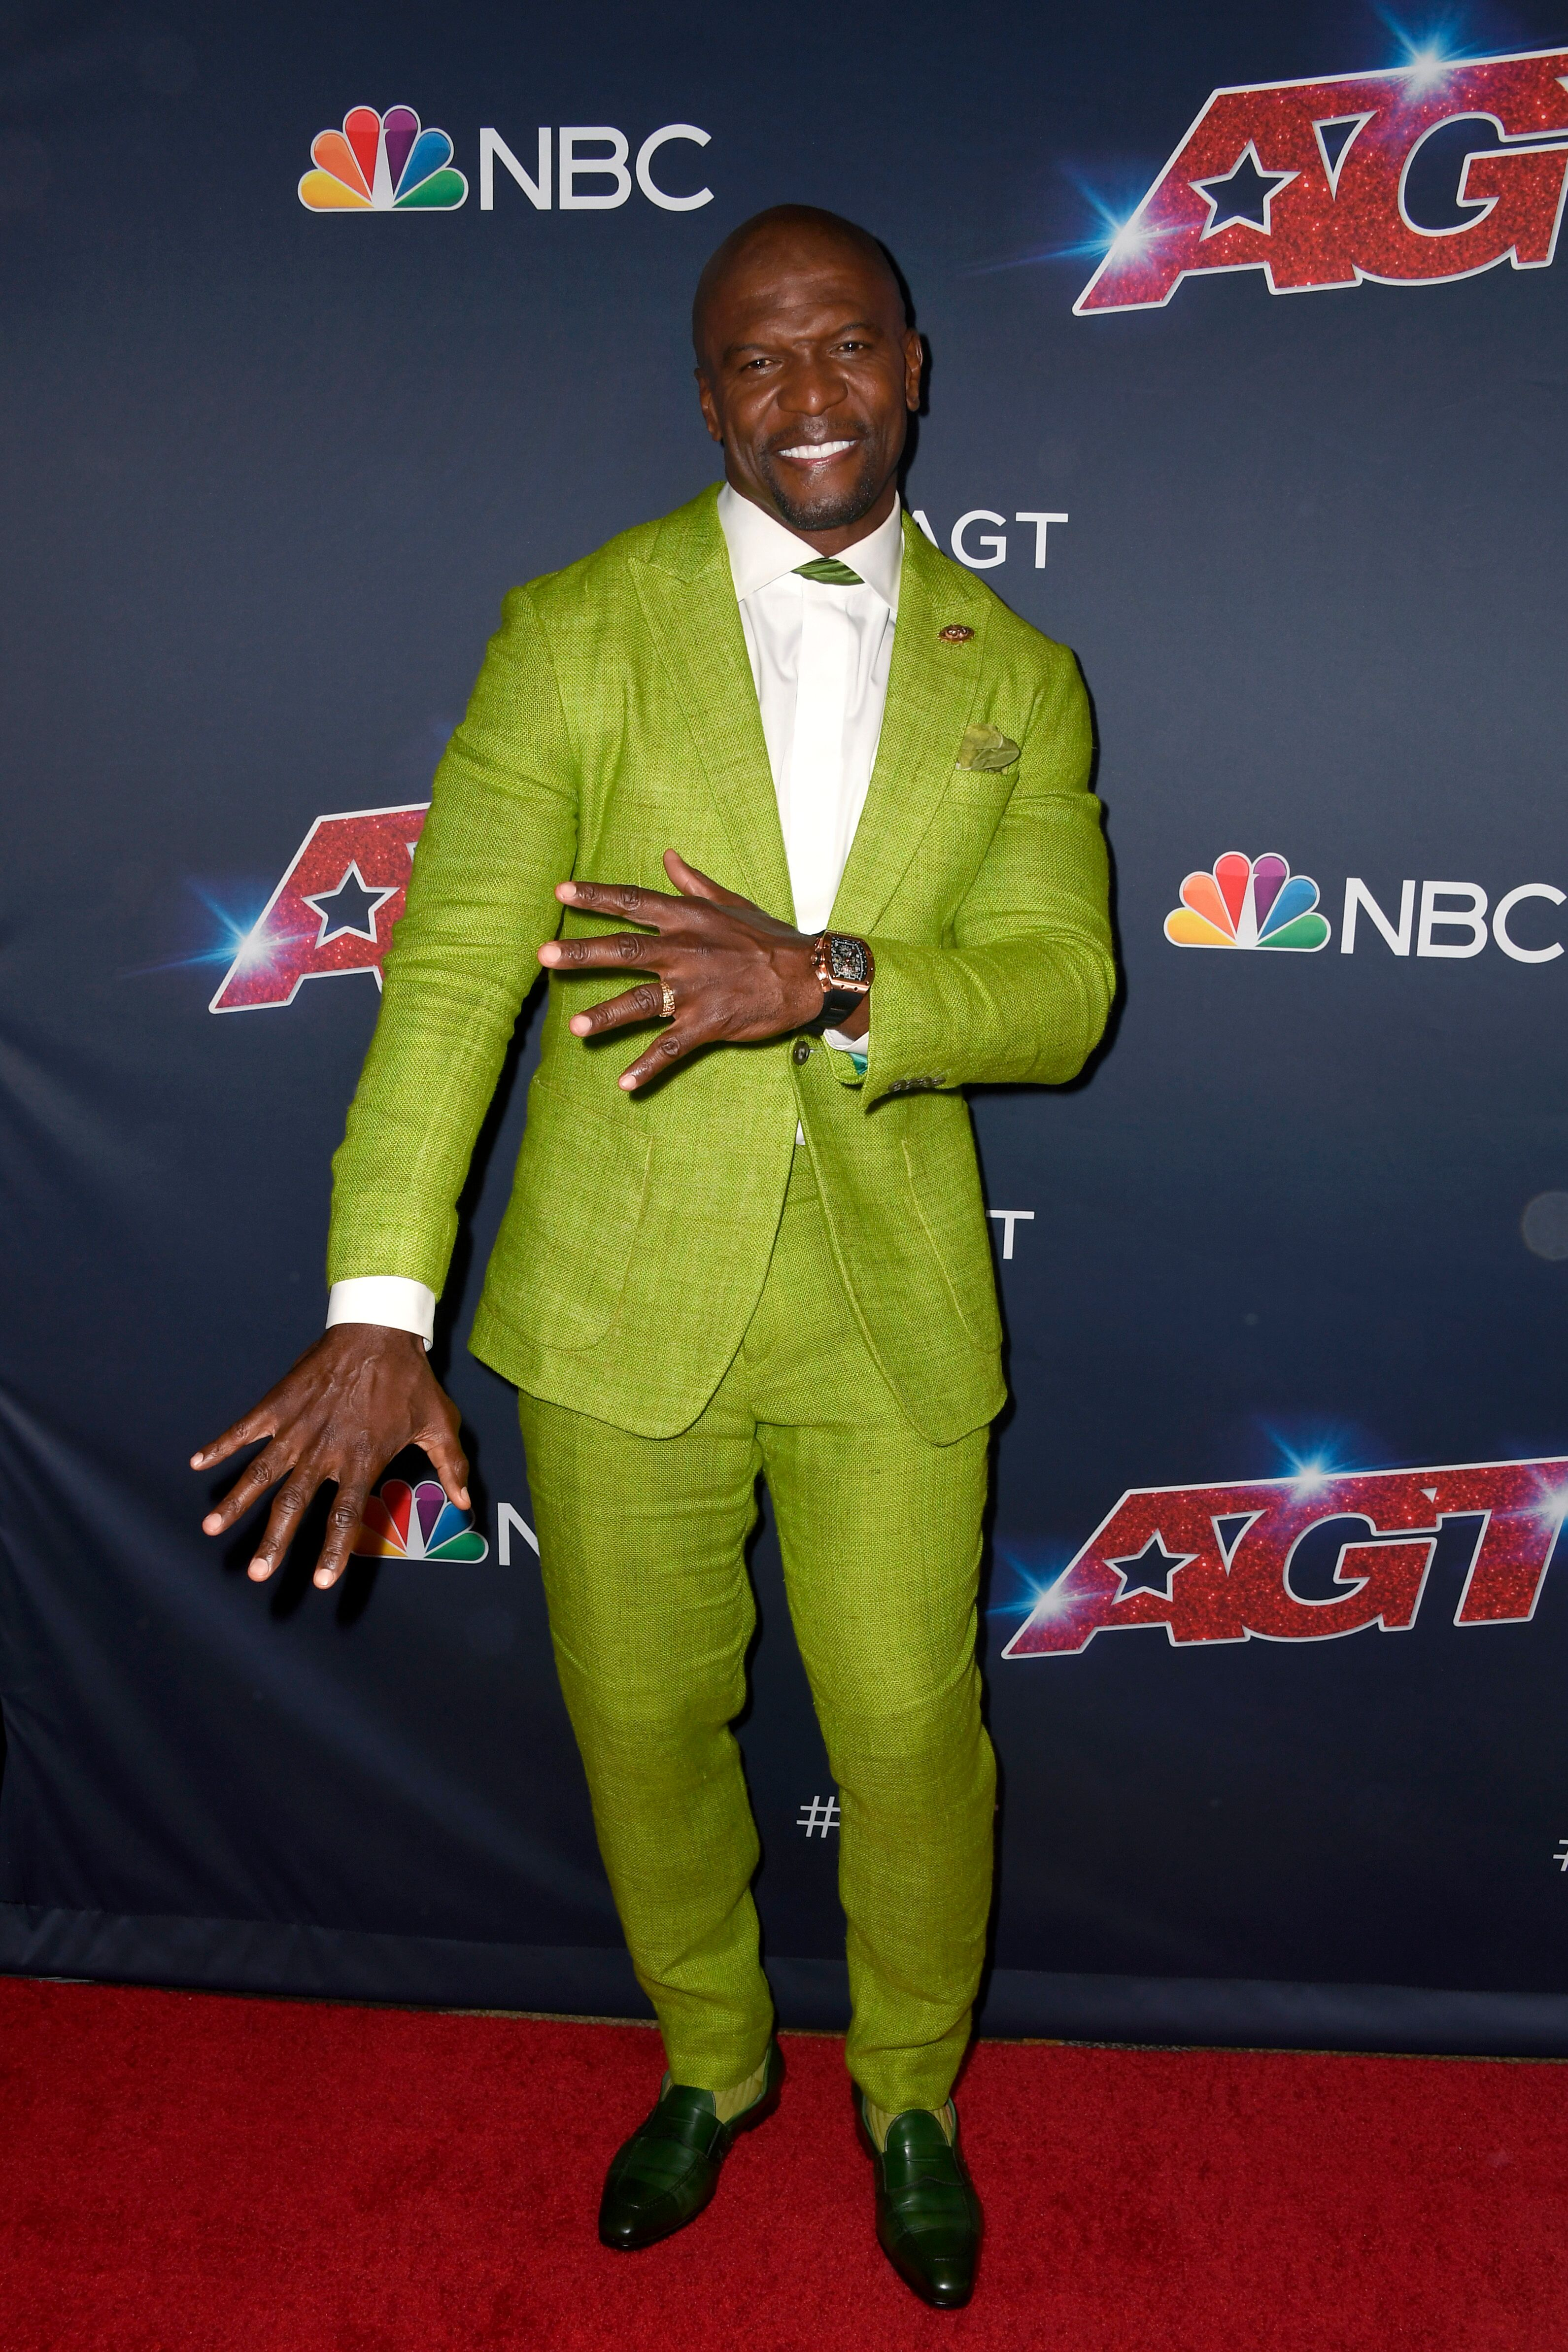 """Terry Crews arrives at the """"America's Got Talent"""" Season 14 Live Show at Dolby Theatre on August 13, 2019 in Hollywood, California. 